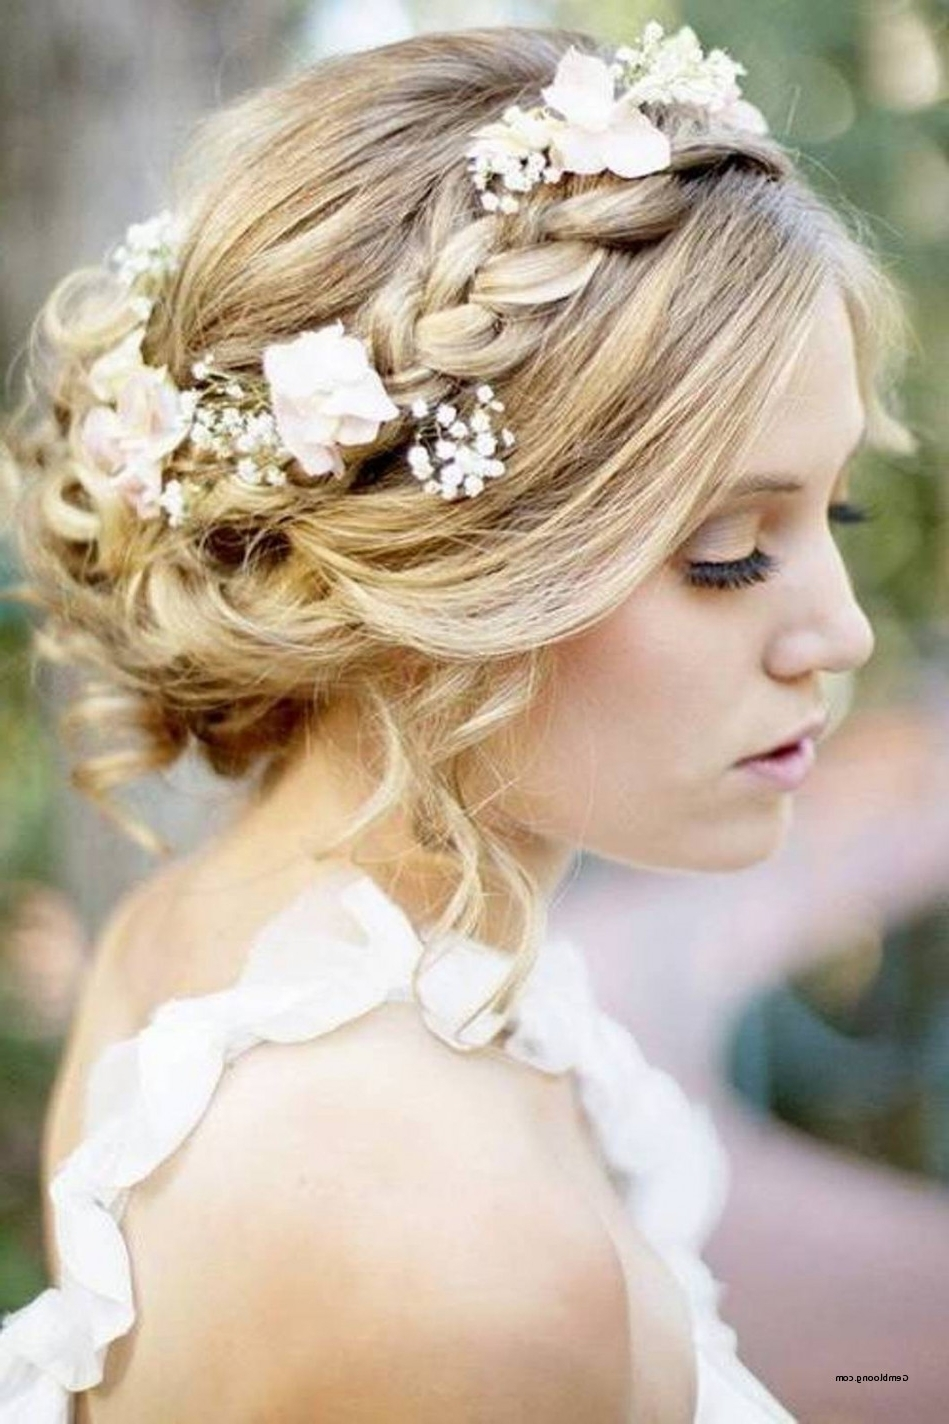 Favorite Wedding Hairstyles For Short Hair With Veil And Tiara Intended For Short Hair Wedding Styles With Tiara Lovely Wedding Hairstyles For (View 2 of 15)